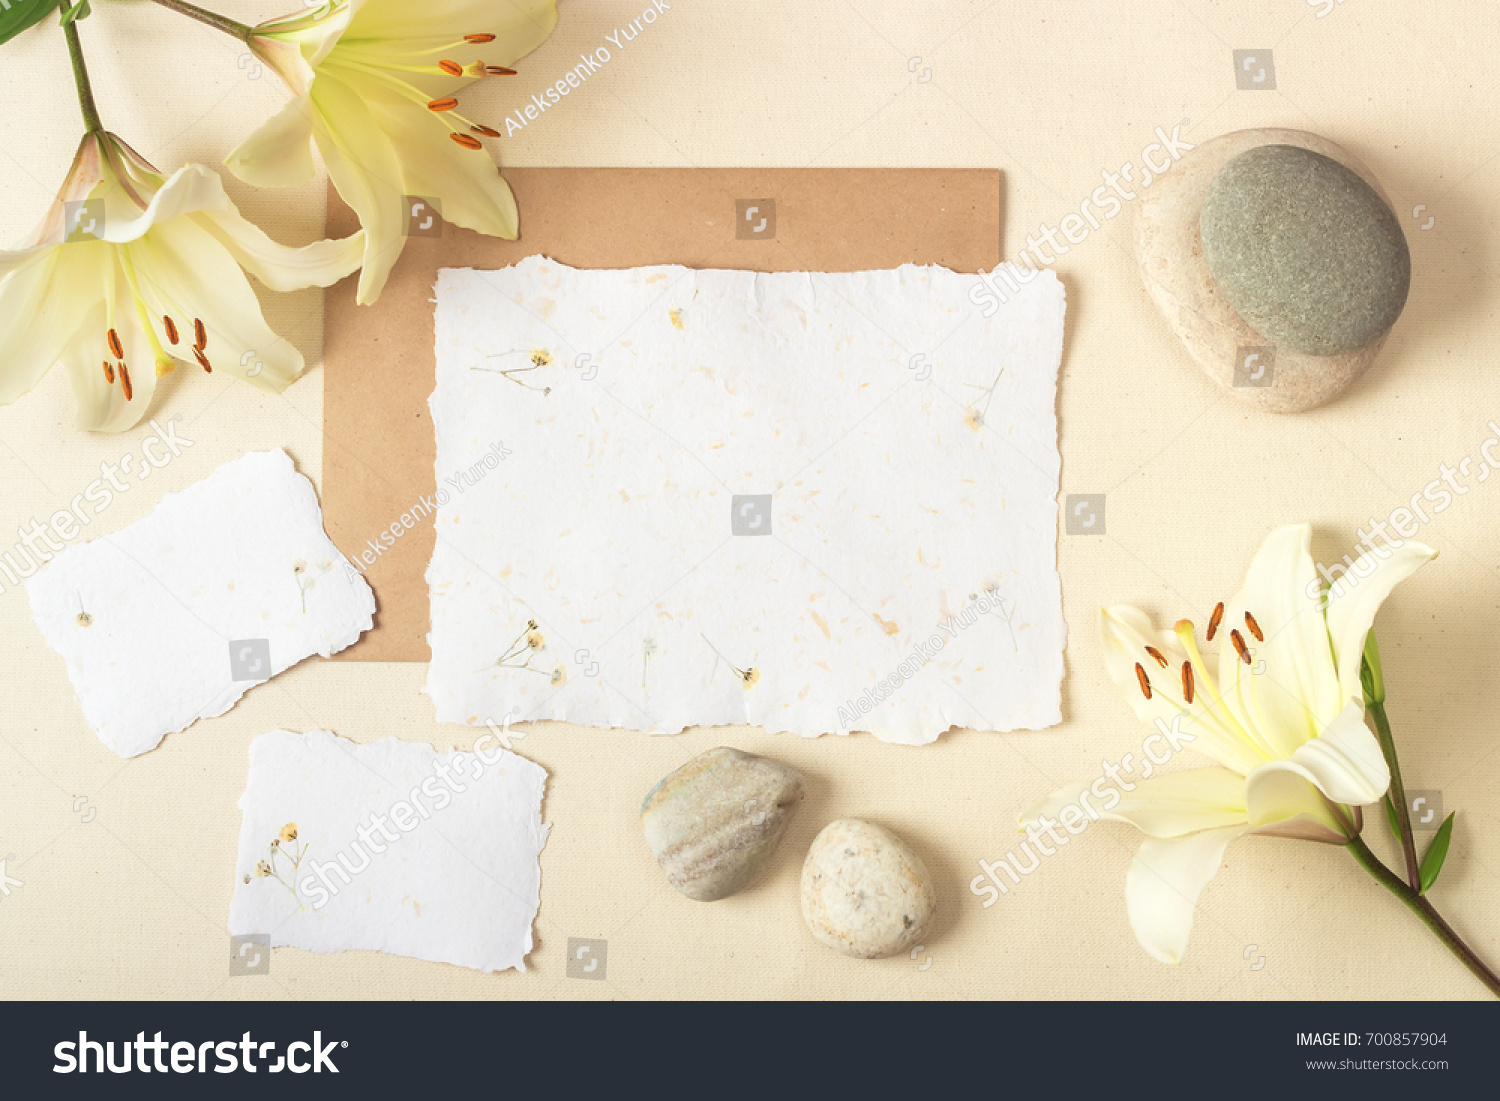 Mockup Postcard Made Handmade Paper Plants Stock Photo Edit Now